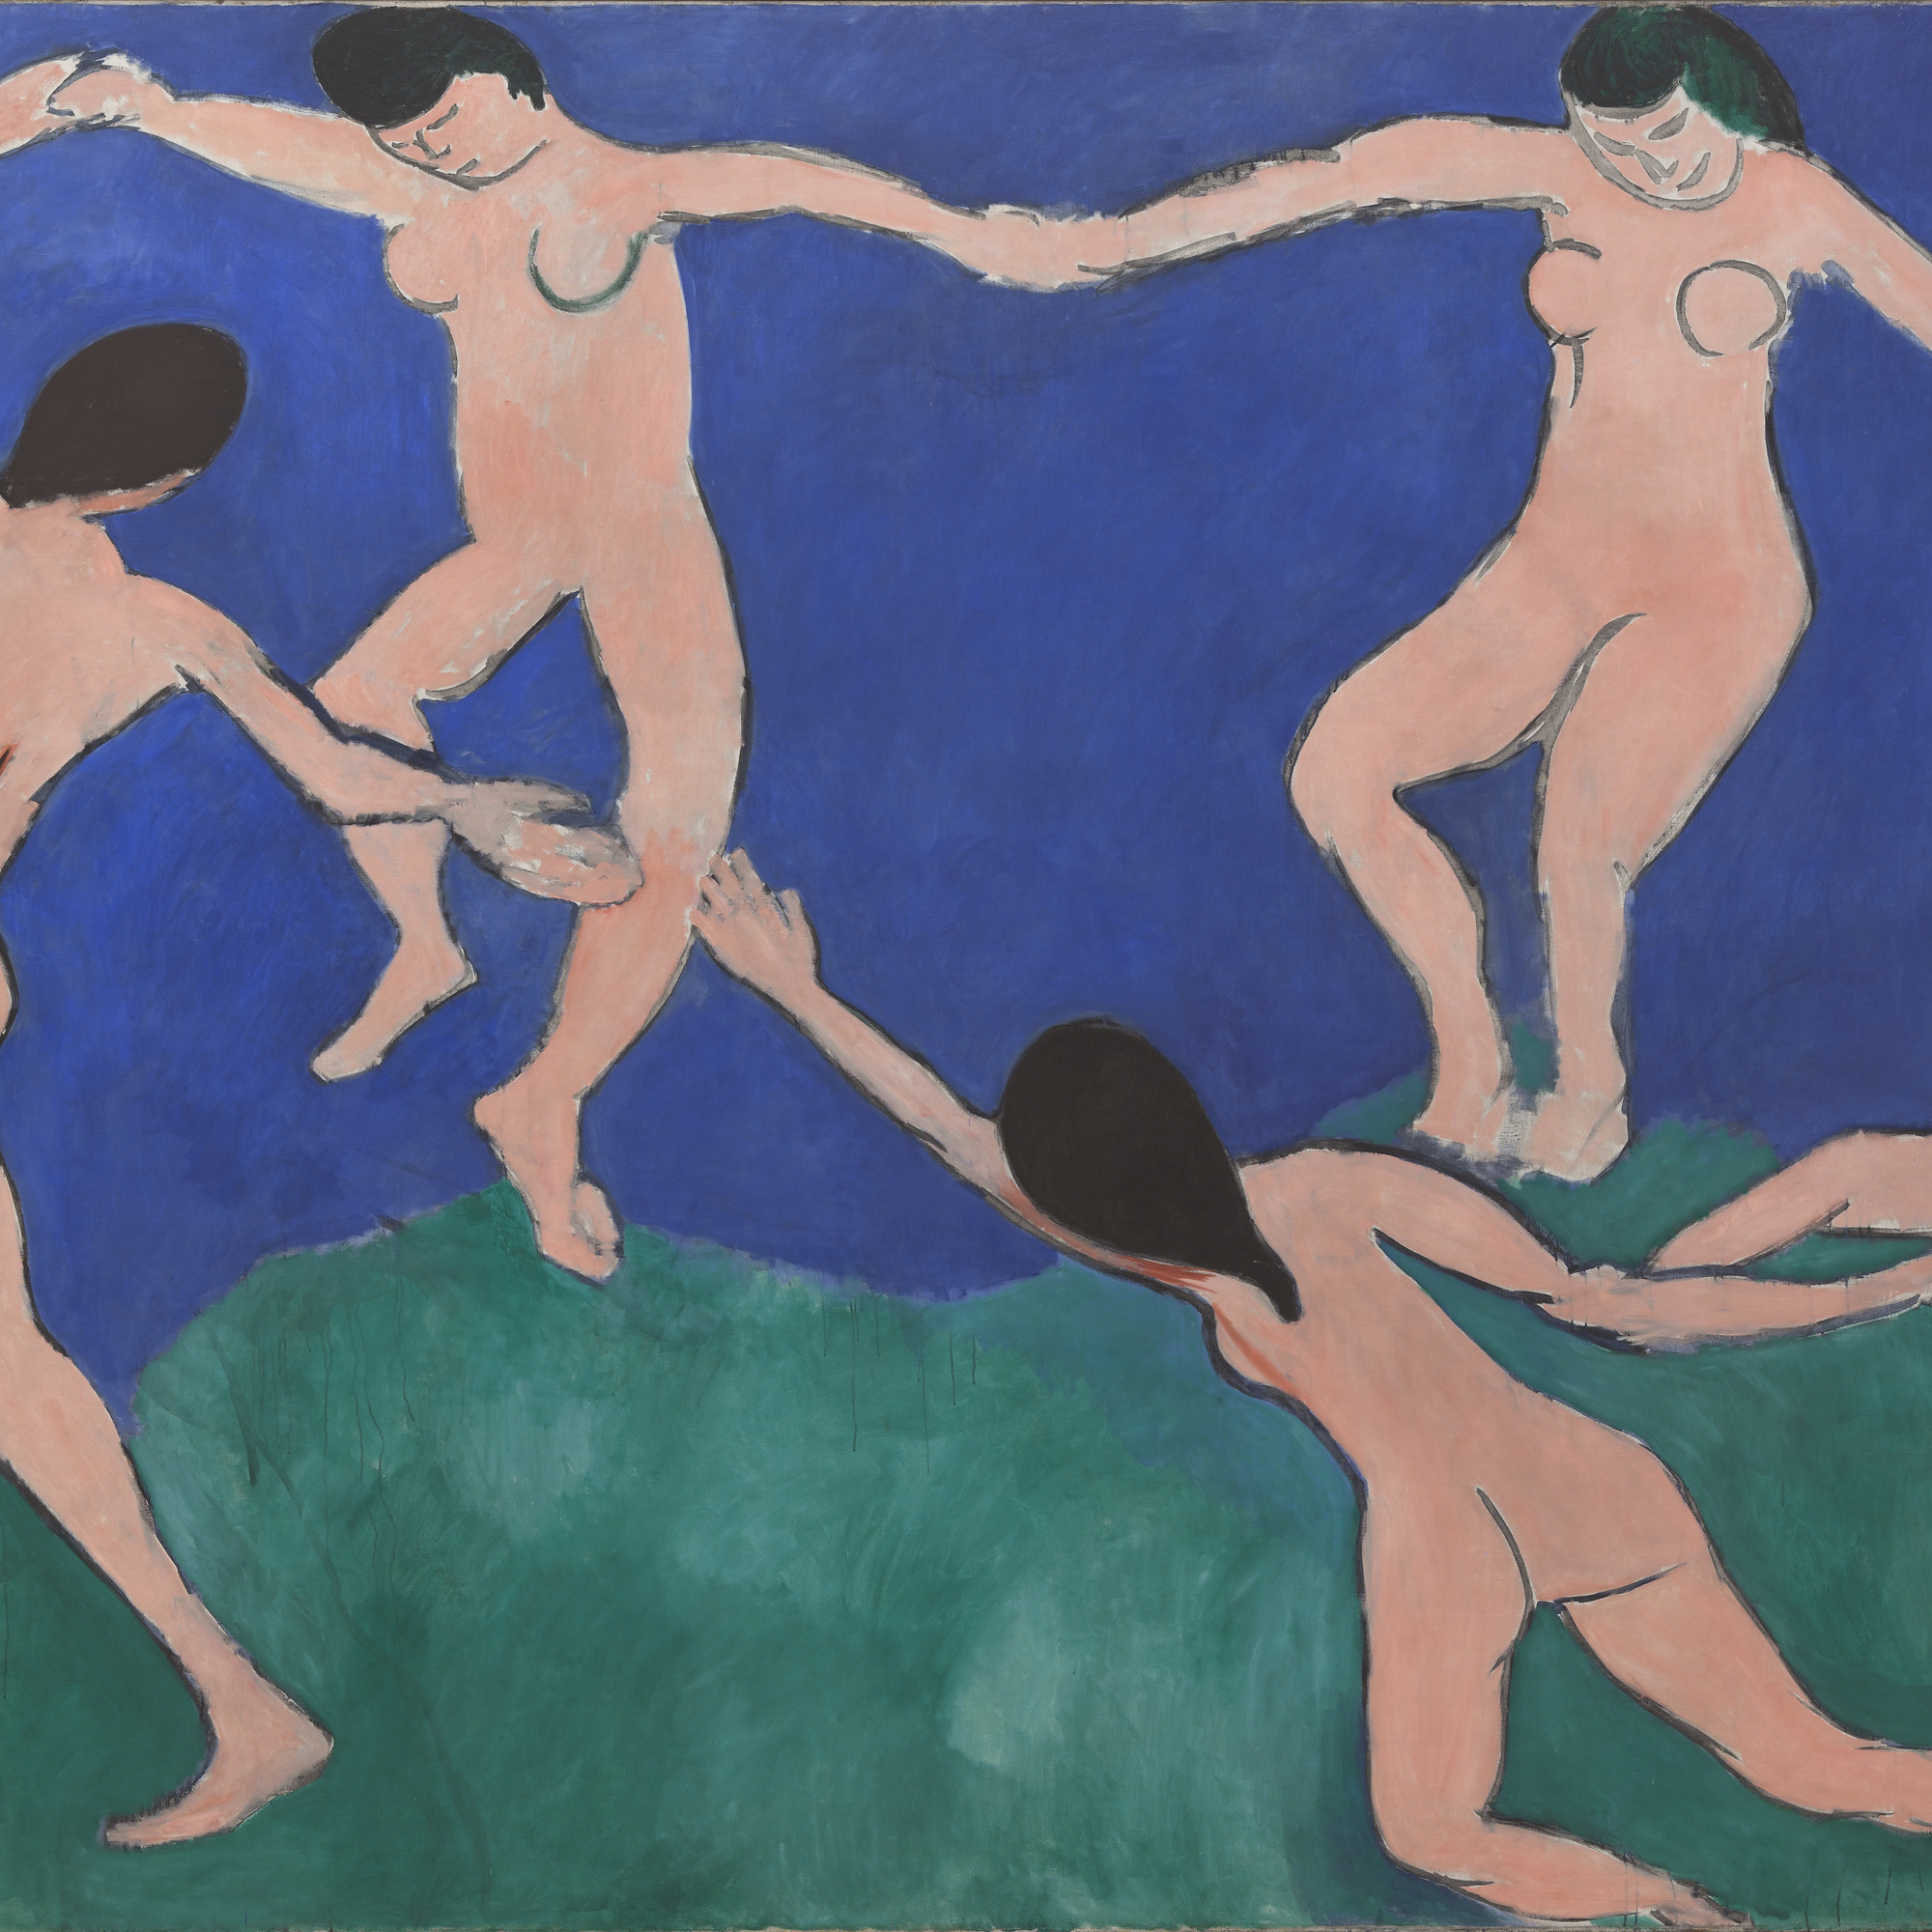 Henri Matisse. Dance (I). Paris, Boulevard des Invalides, early 1909. Oil on canvas, 8ʹ 6 1/2ʺ × 12ʹ 9 1/2ʺ (259.7 × 390.1 cm). Gift of Nelson A. Rockefeller in honor of Alfred H. Barr, Jr. © 2016 Succession H. Matisse / Artists Rights Society (ARS), New York